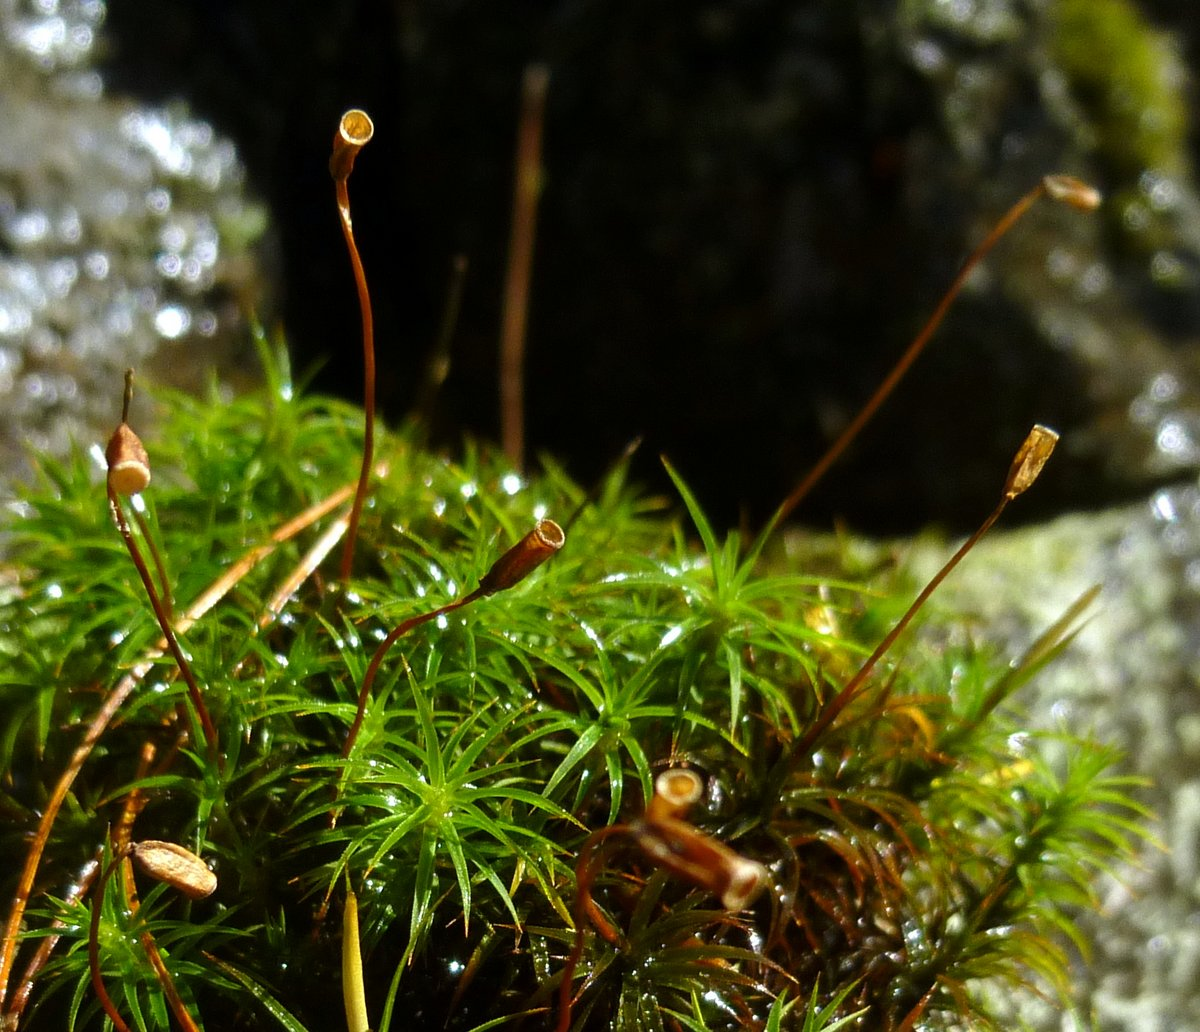 5. Mountain Haircap Moss